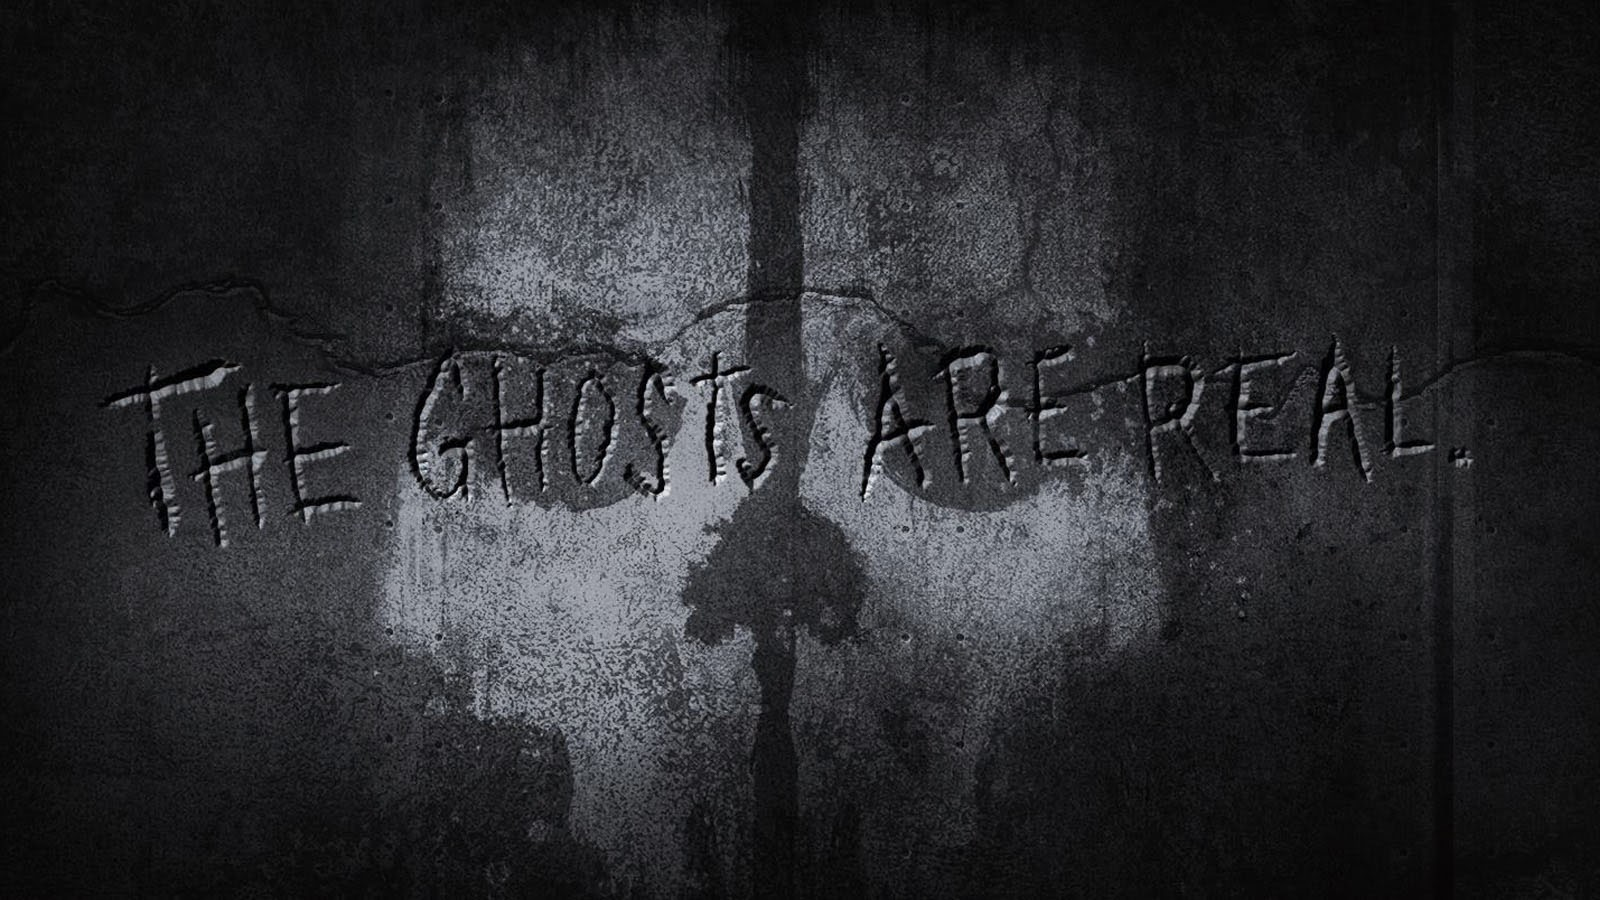 Ghosts cod the ghost are real video game hd wallpaper 1600x900 a318